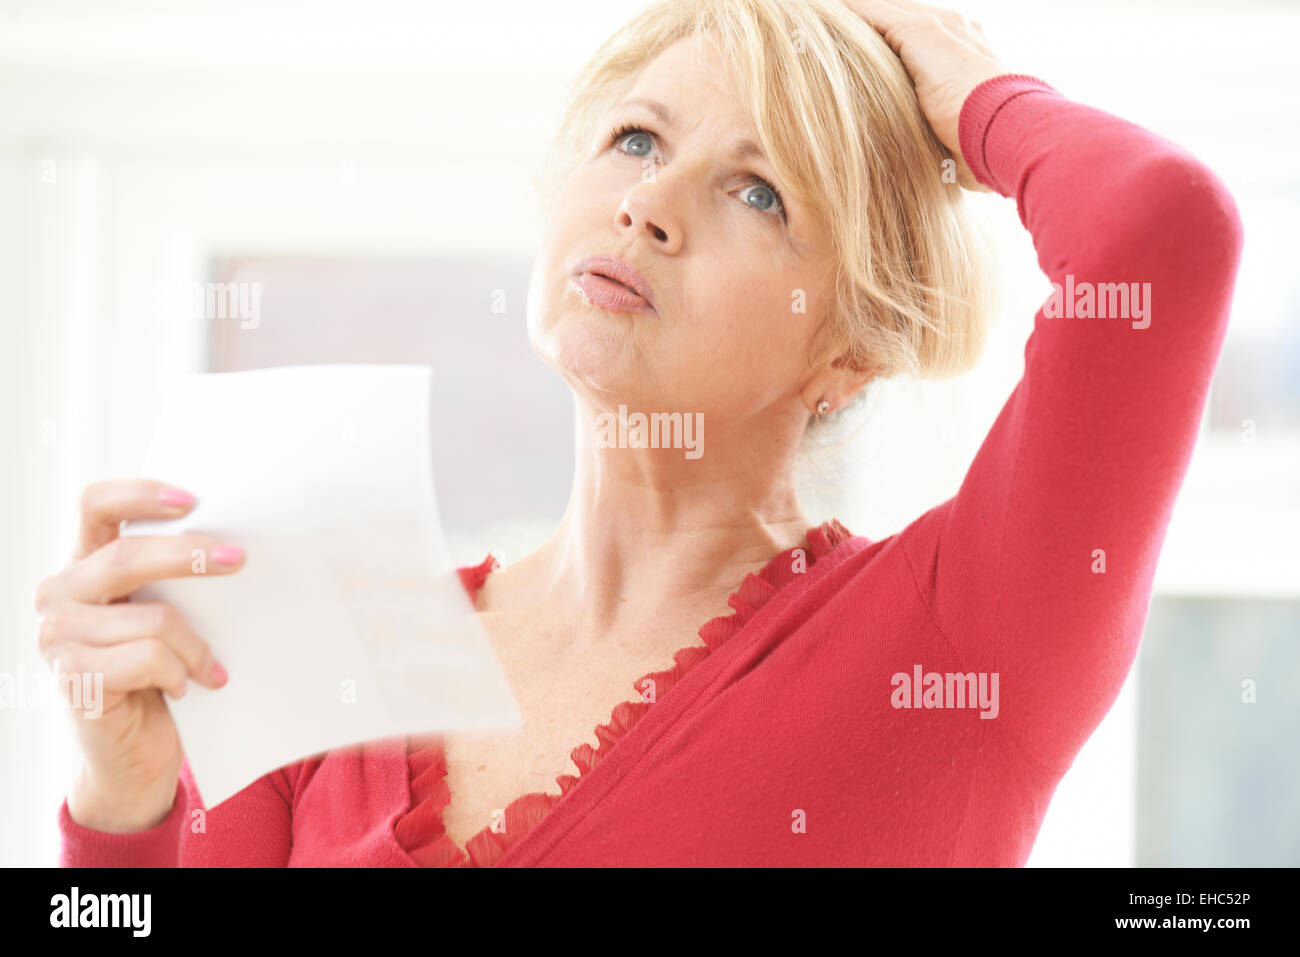 Mature Woman Experiencing Hot Flush From Menopause - Stock Image